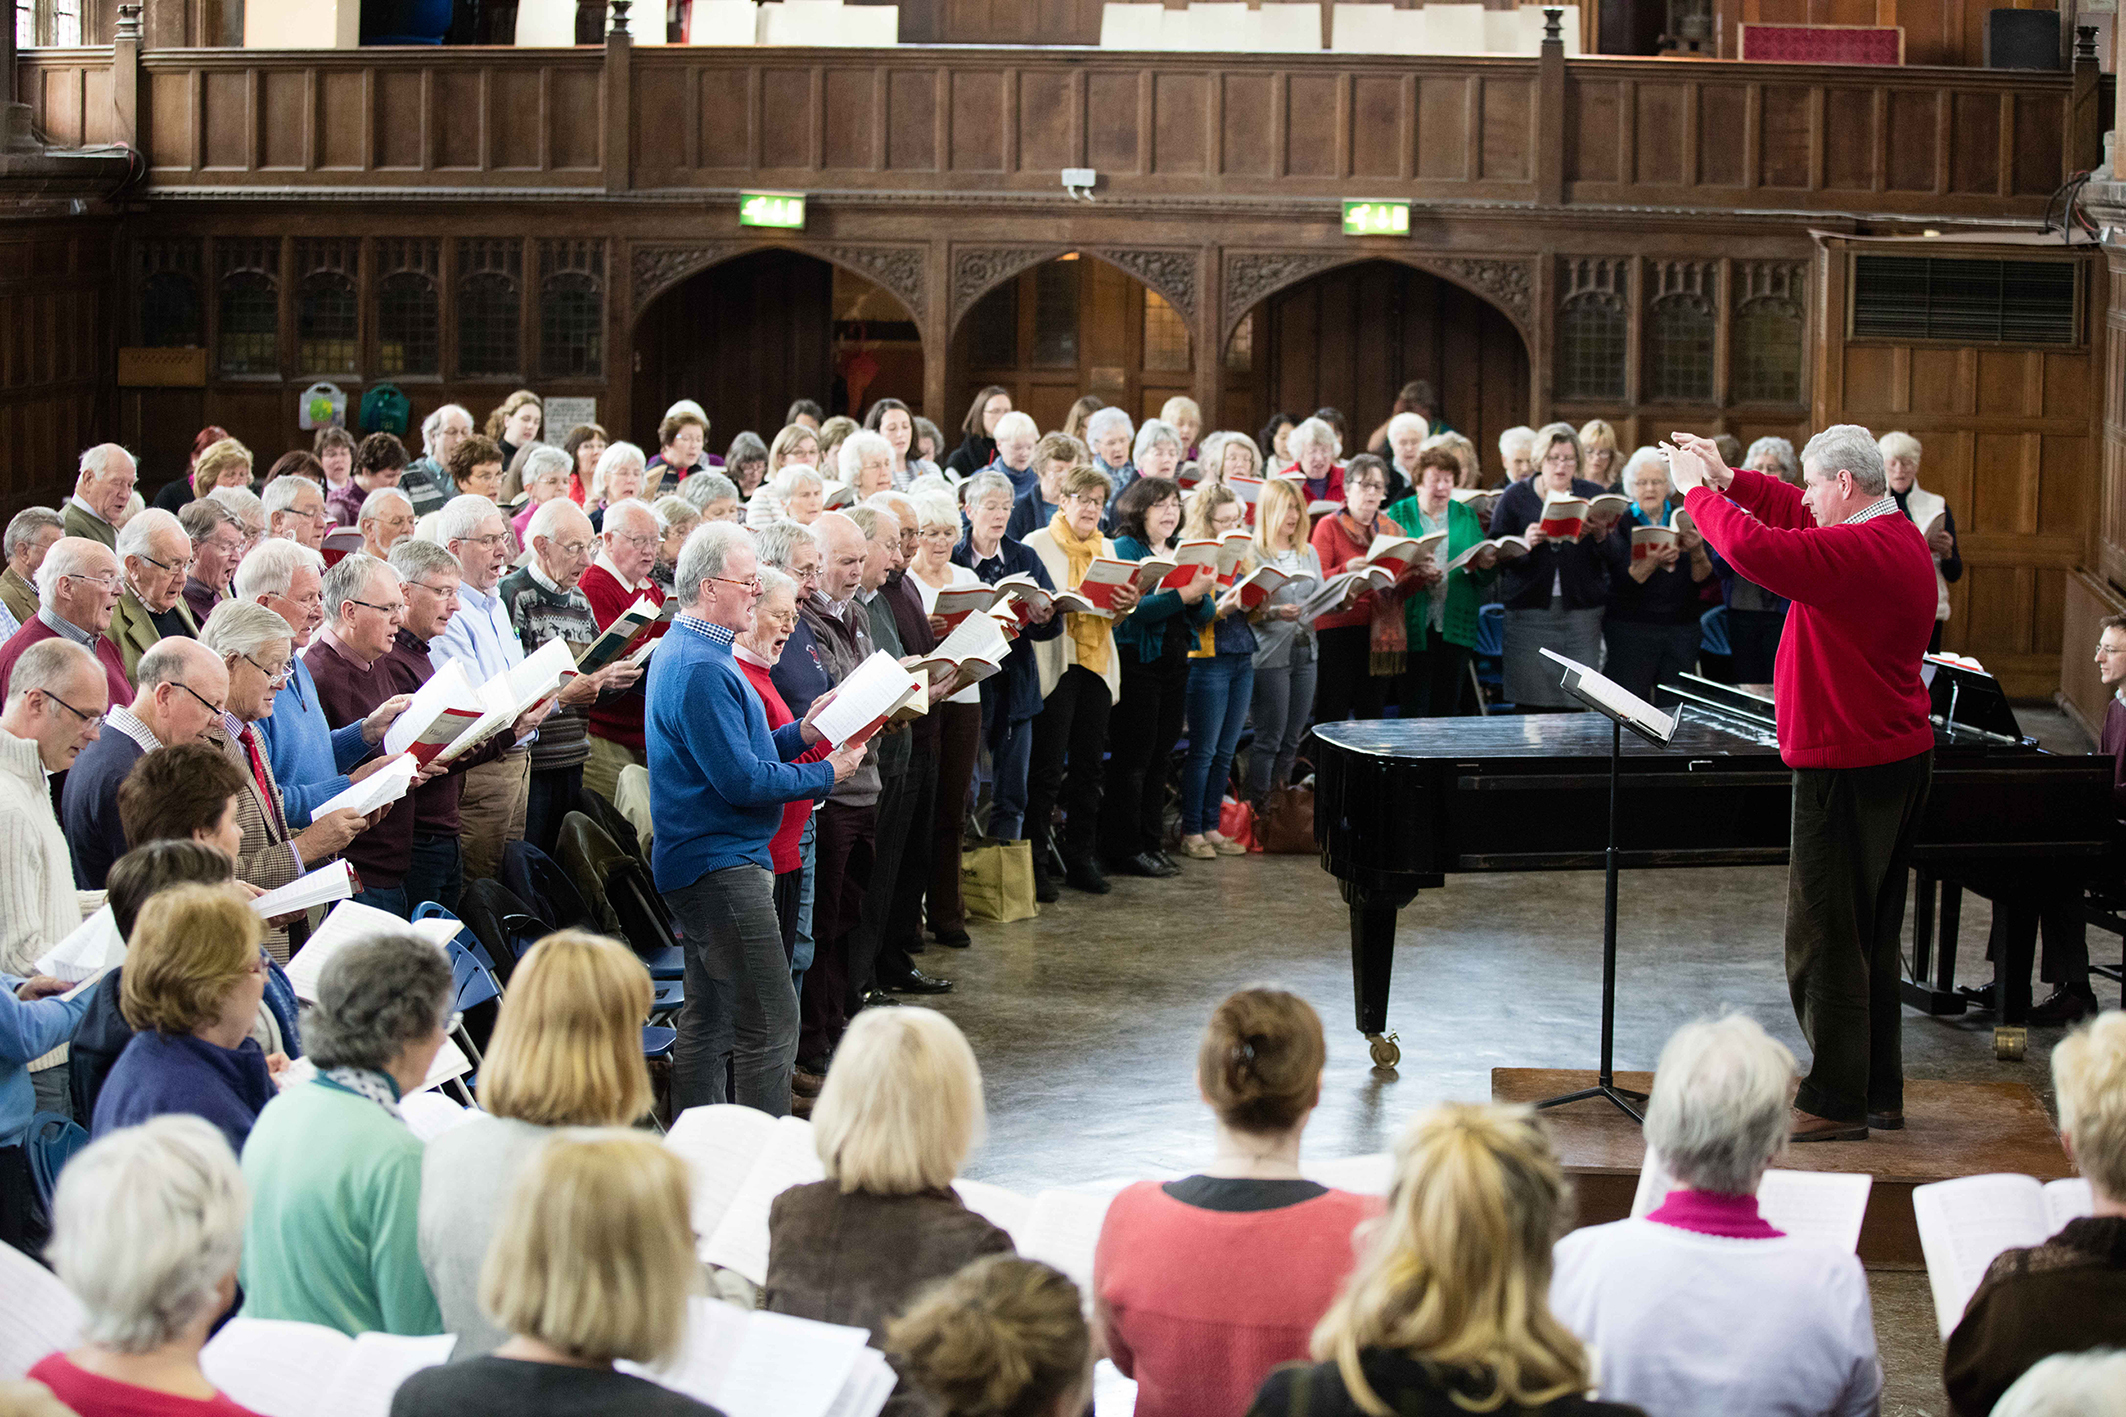 AMBITIOUS - Verdi will be the challenge for a Come and Sing session in Worcester